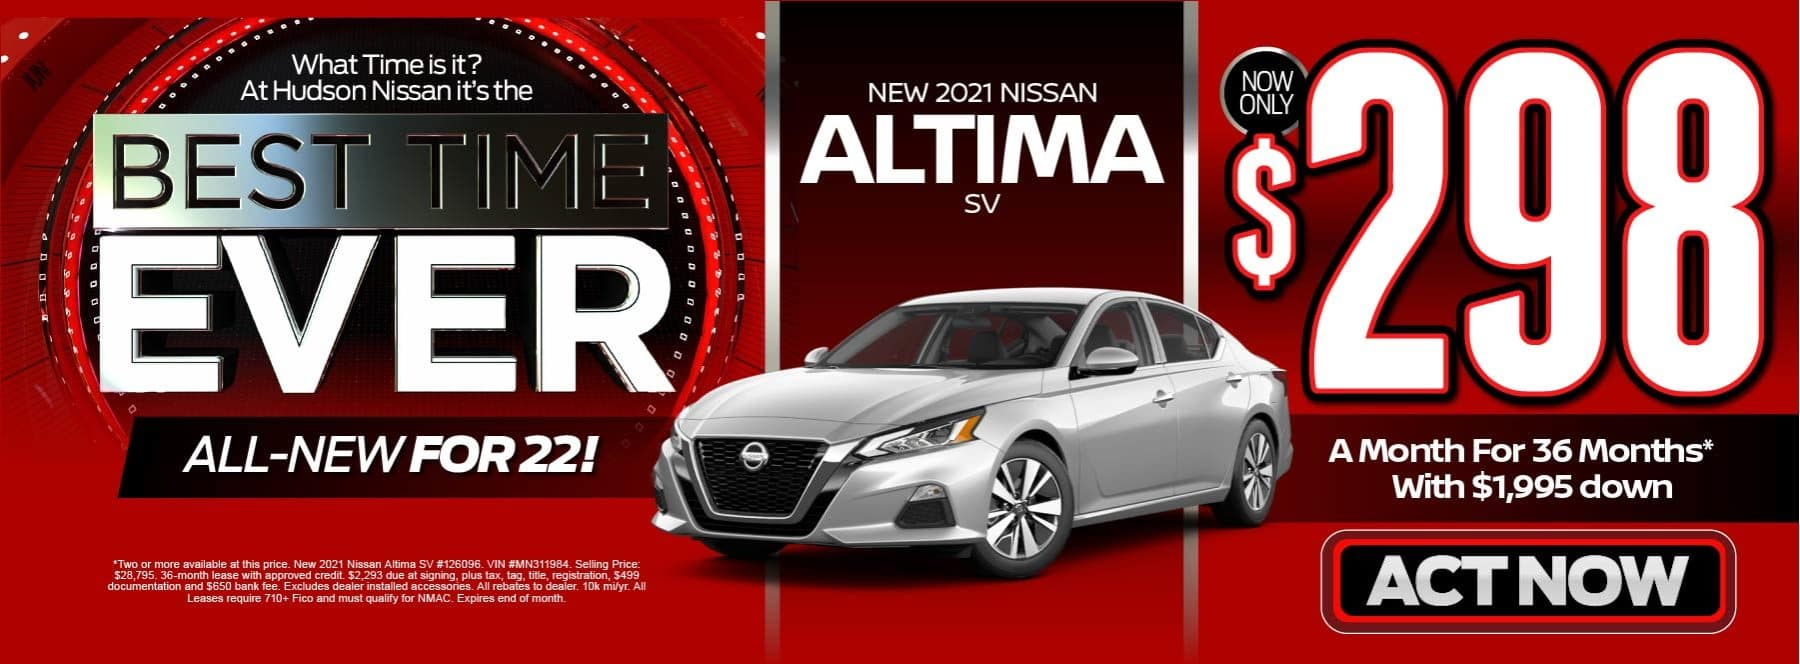 New 2021 Nissan Altima - Now only $298 a month - Act Now